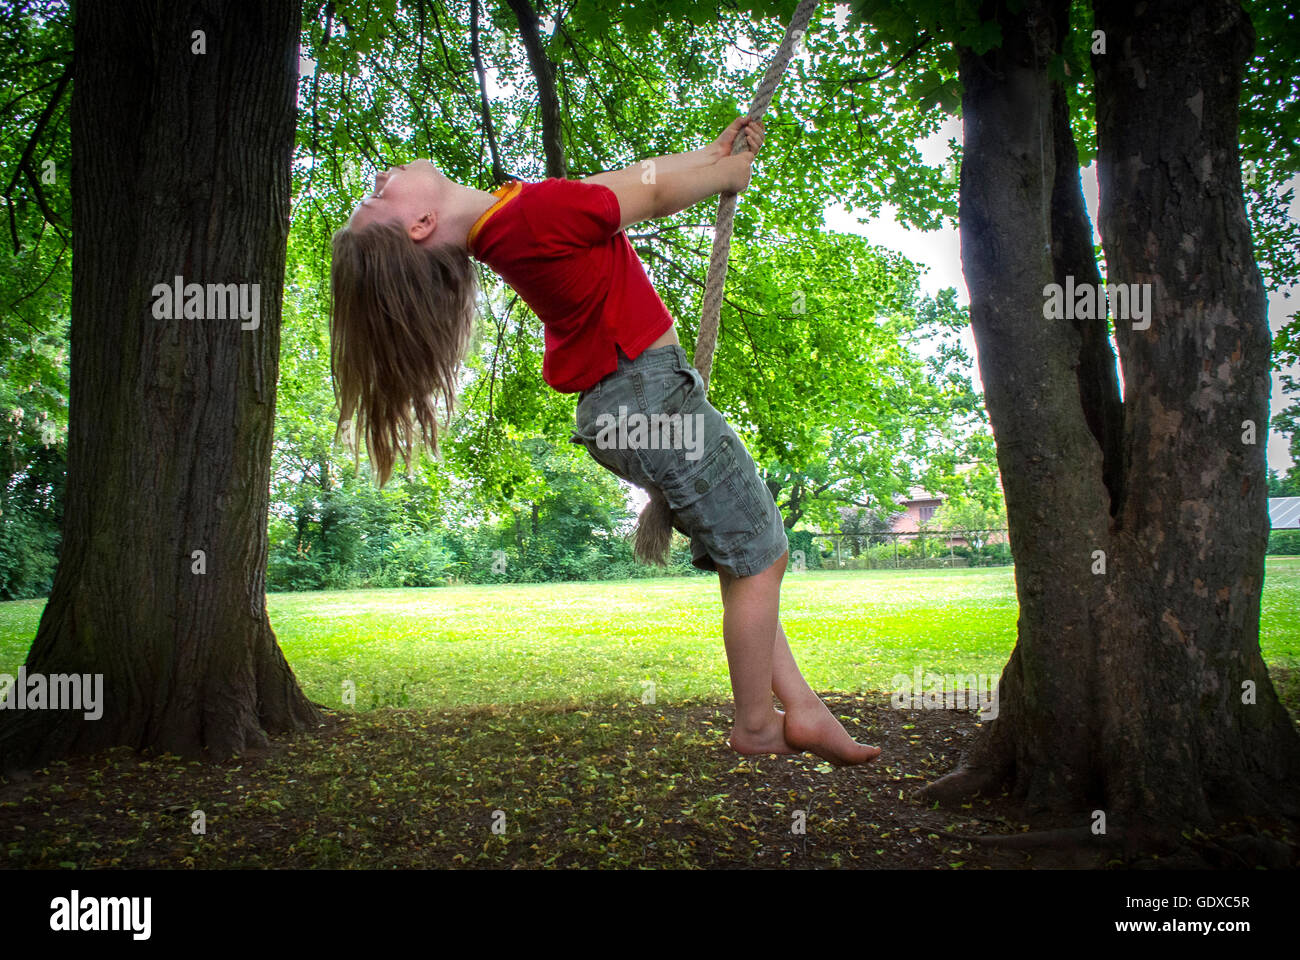 A young girl swinging on a tree rope. - Stock Image